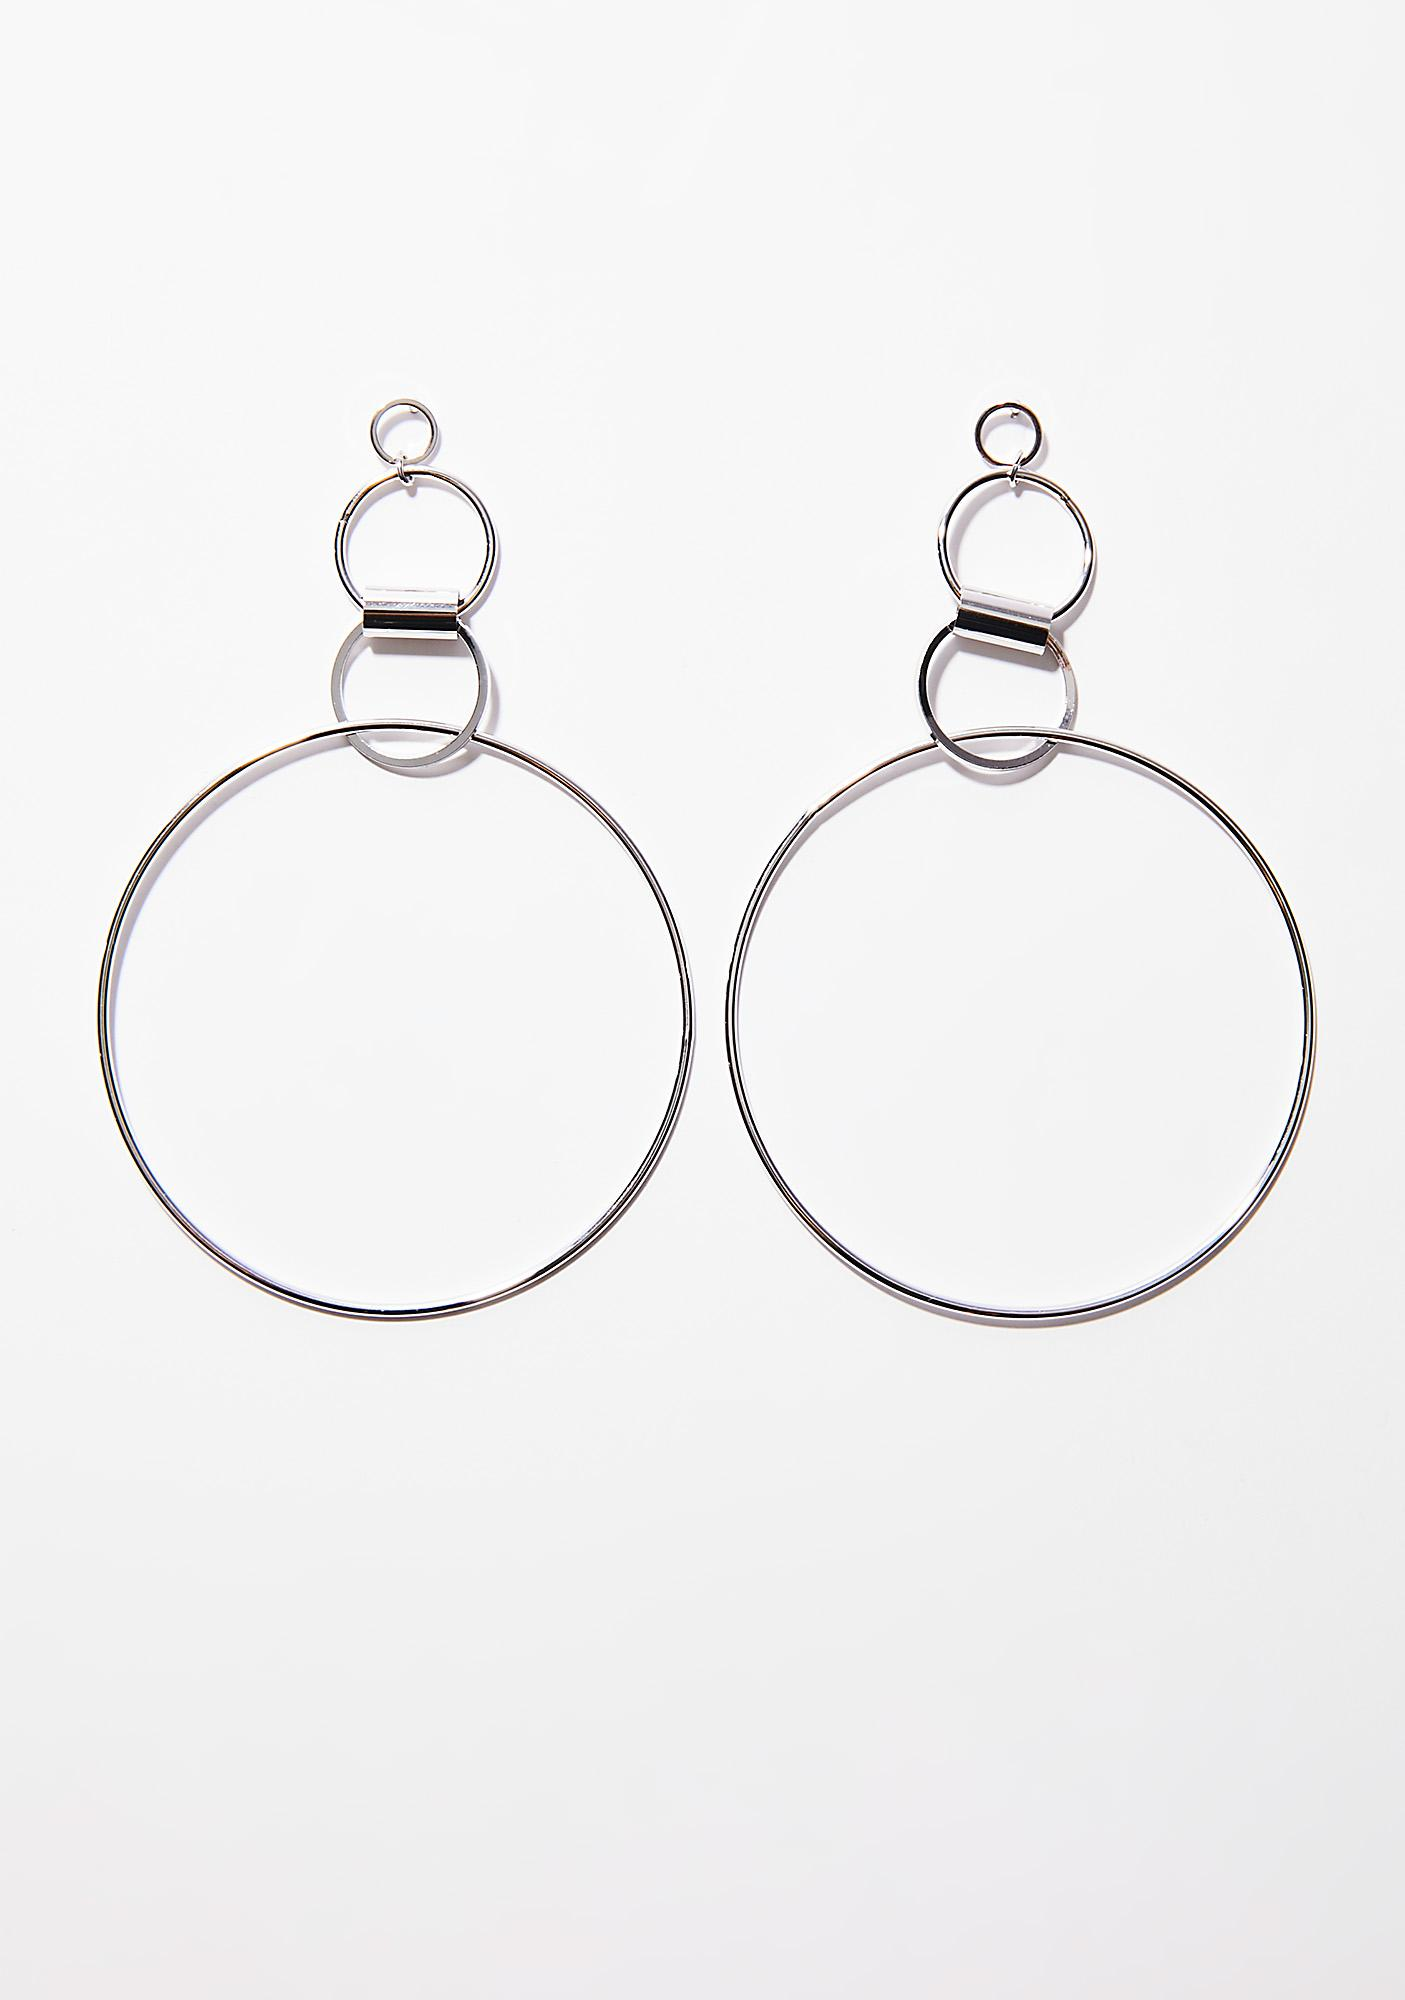 shop cheri jewellery summer ashley co minimalist hollow hoop mon round earrings jewelry gold singapore circle